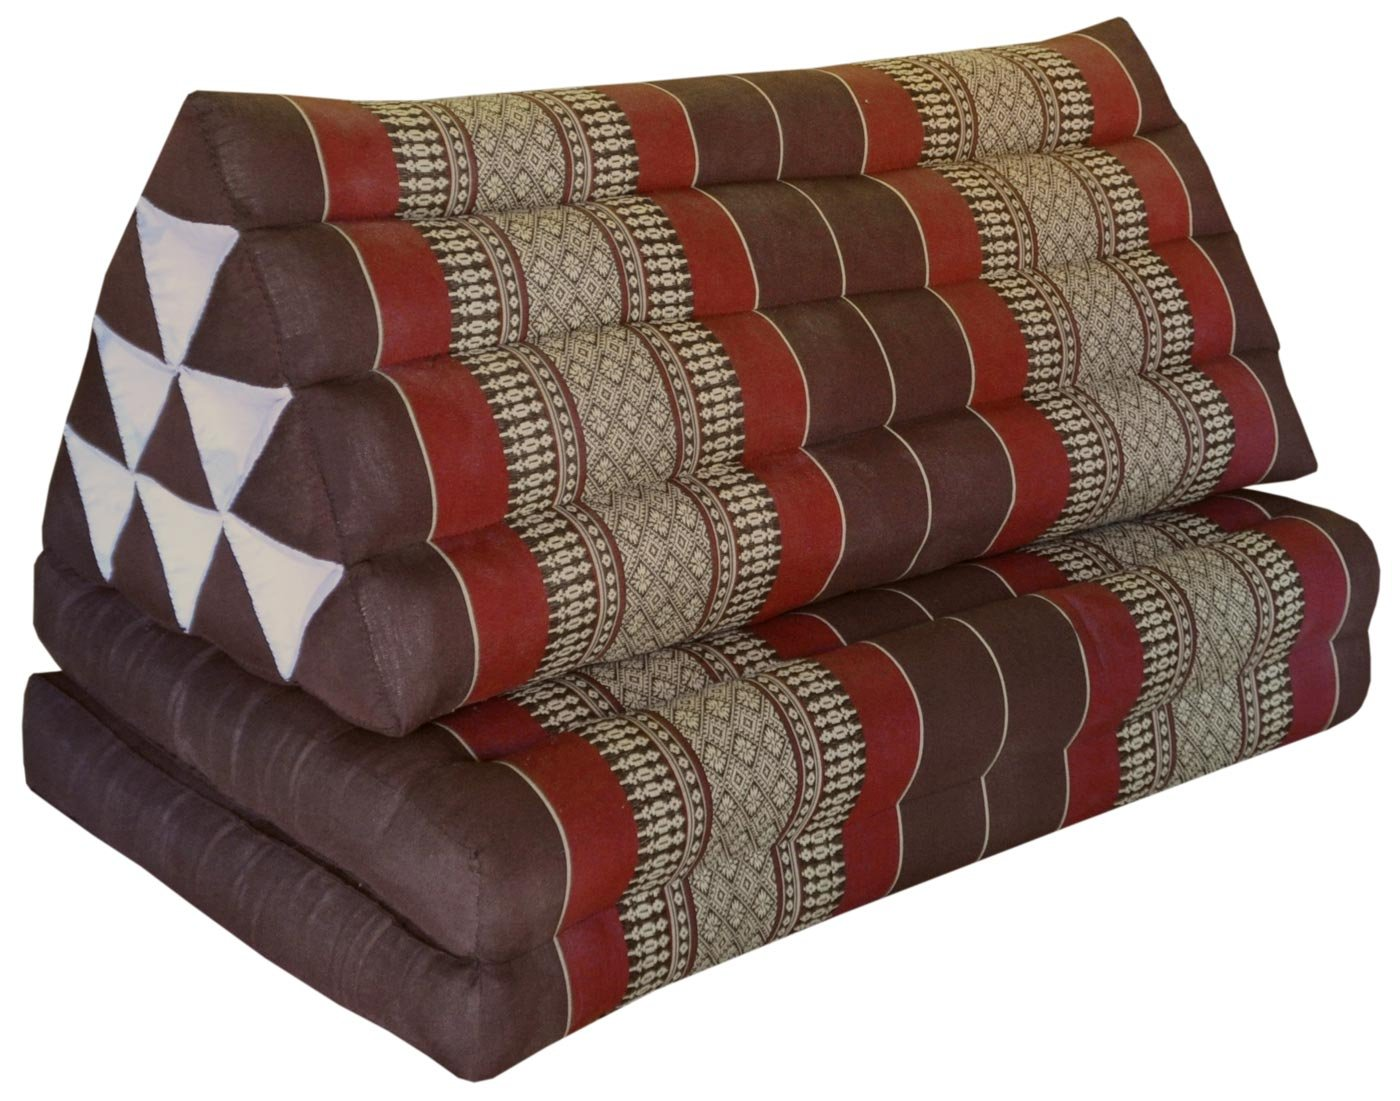 Thai triangle cushion XXL, with 2 folding seats, brown/burgundy, sofa, relaxation, beach, pool, meditation, yoga, made in Thailand. (82517) by Wilai GmbH